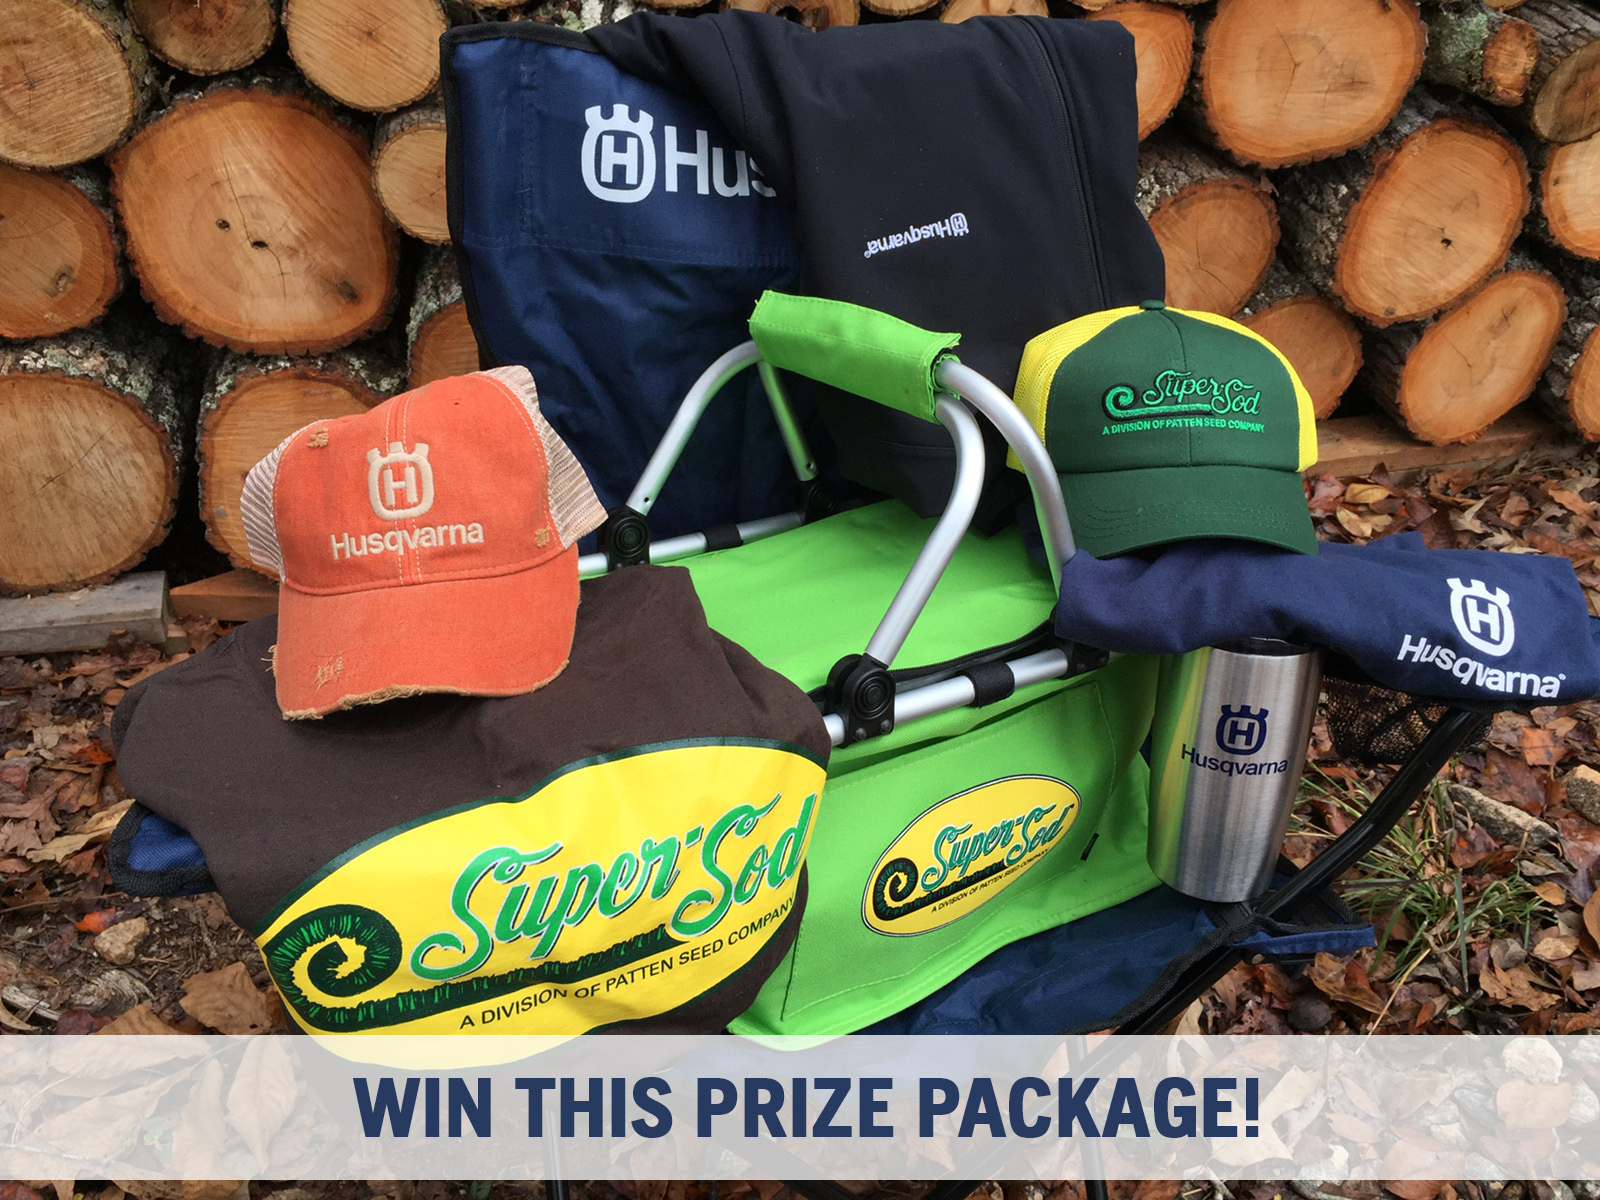 Prize Package with Husqvarna and Super-Sod